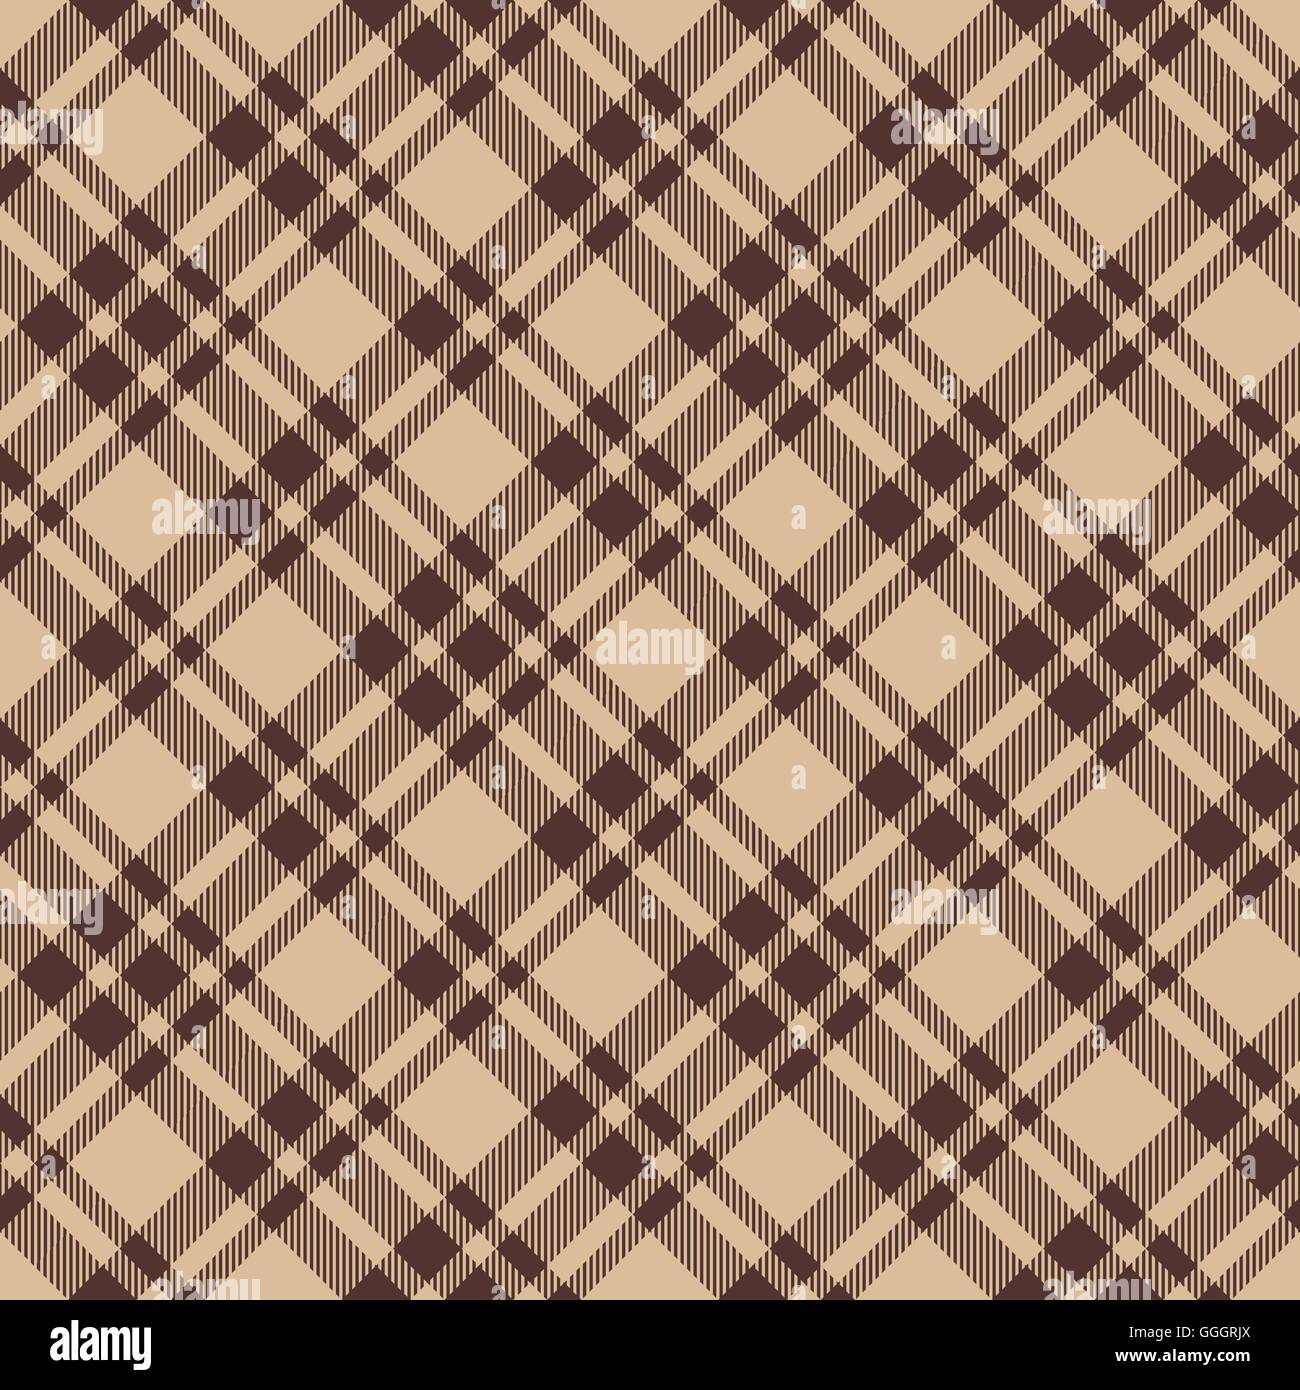 Brown Seamless Fabric Textures Beige Brown Diagonal Check Plaid Seamless Fabric Texture Vector